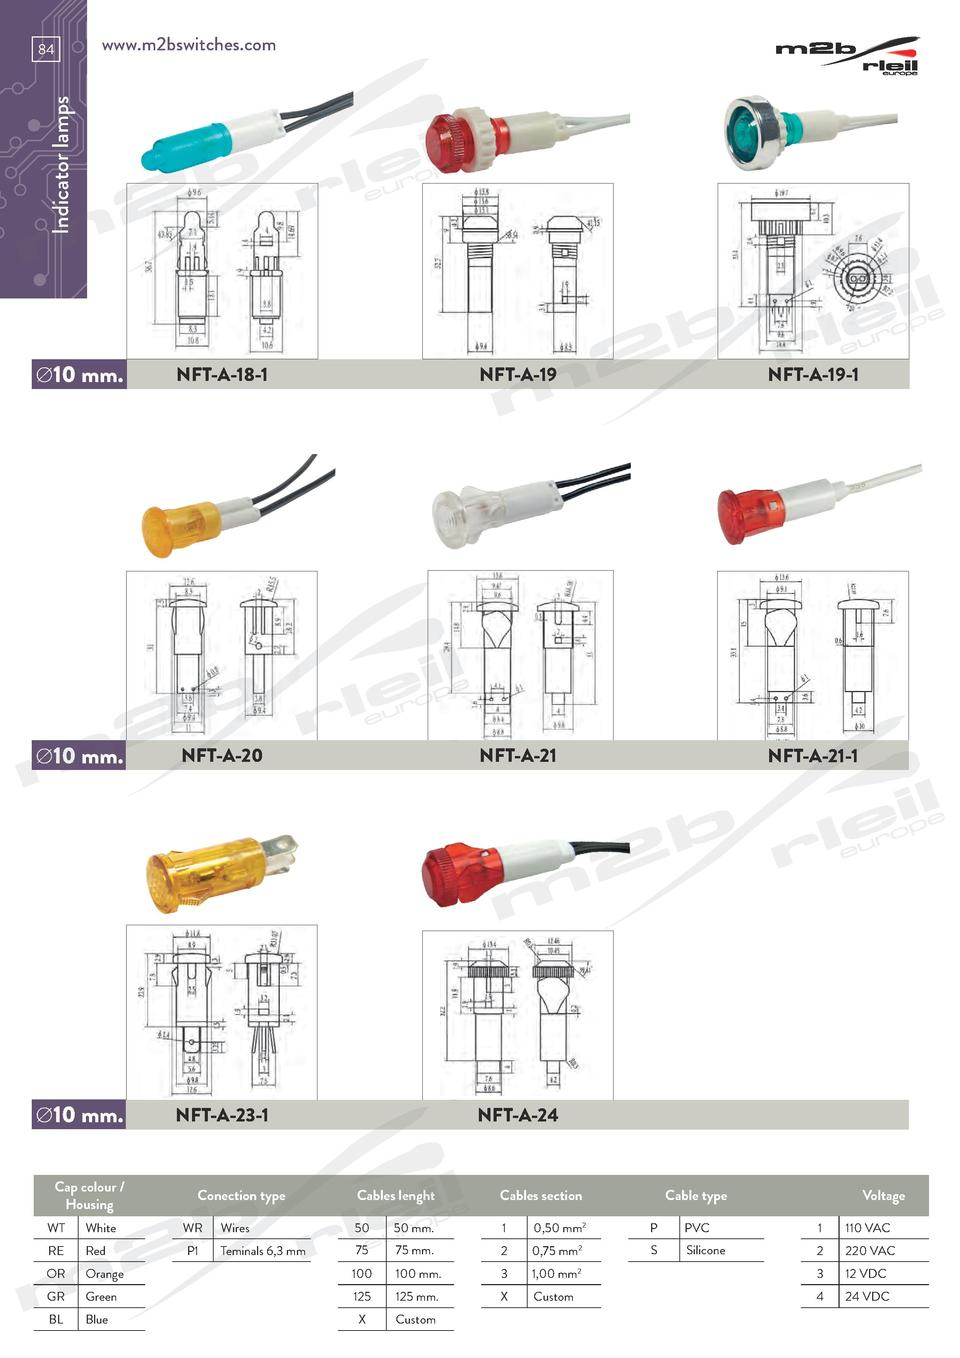 www.m2bswitches.com  Indicator lamps  84    10 mm.  NFT-A-18-1  NFT-A-19  NFT-A-19-1    10 mm.  NFT-A-20  NFT-A-21  NFT-A-...